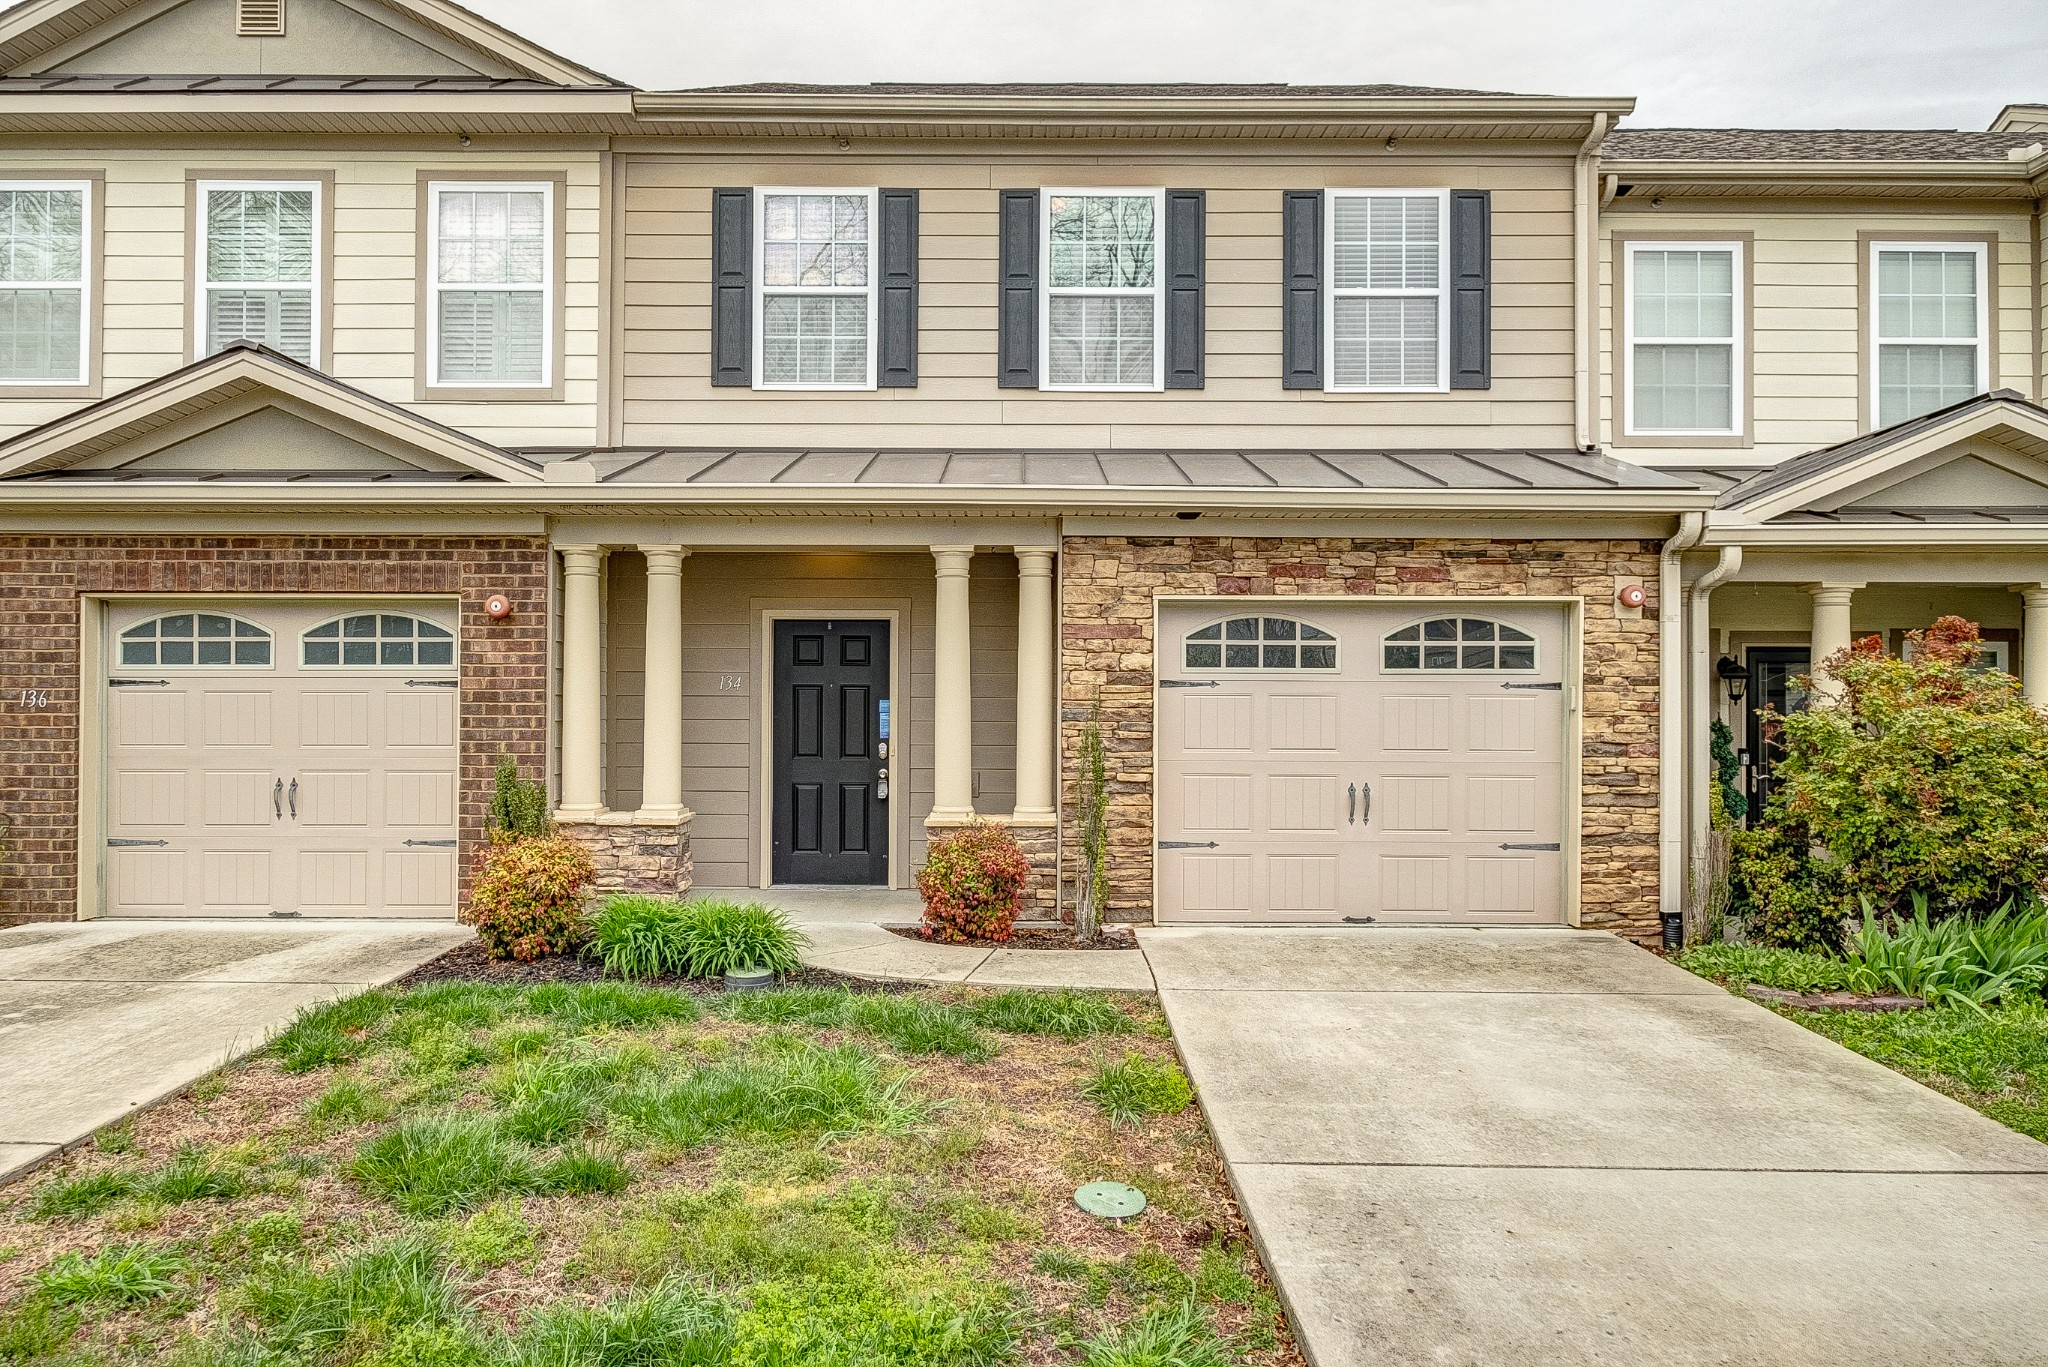 Great 3 bedroom, 2.5 bathroom home! This home features an open floor plan, large primary suite, and patio! Located across from a lake with a marina just a block away! Renting is permitted with a minumun of 6 month lease as per CCR's page 24 section 10. B